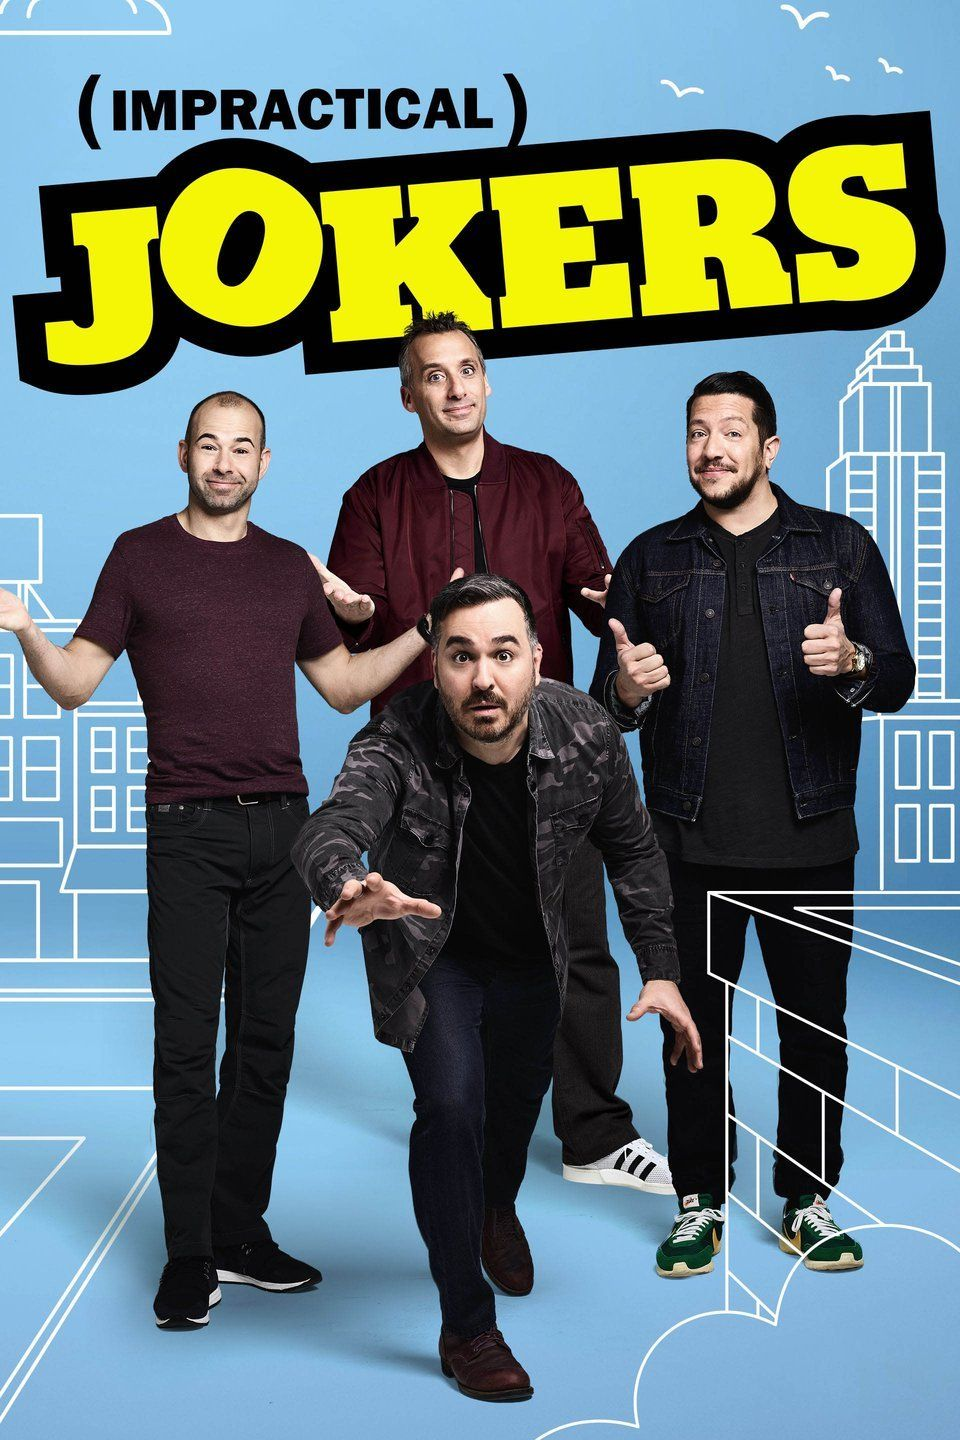 Pin on impractical jokers